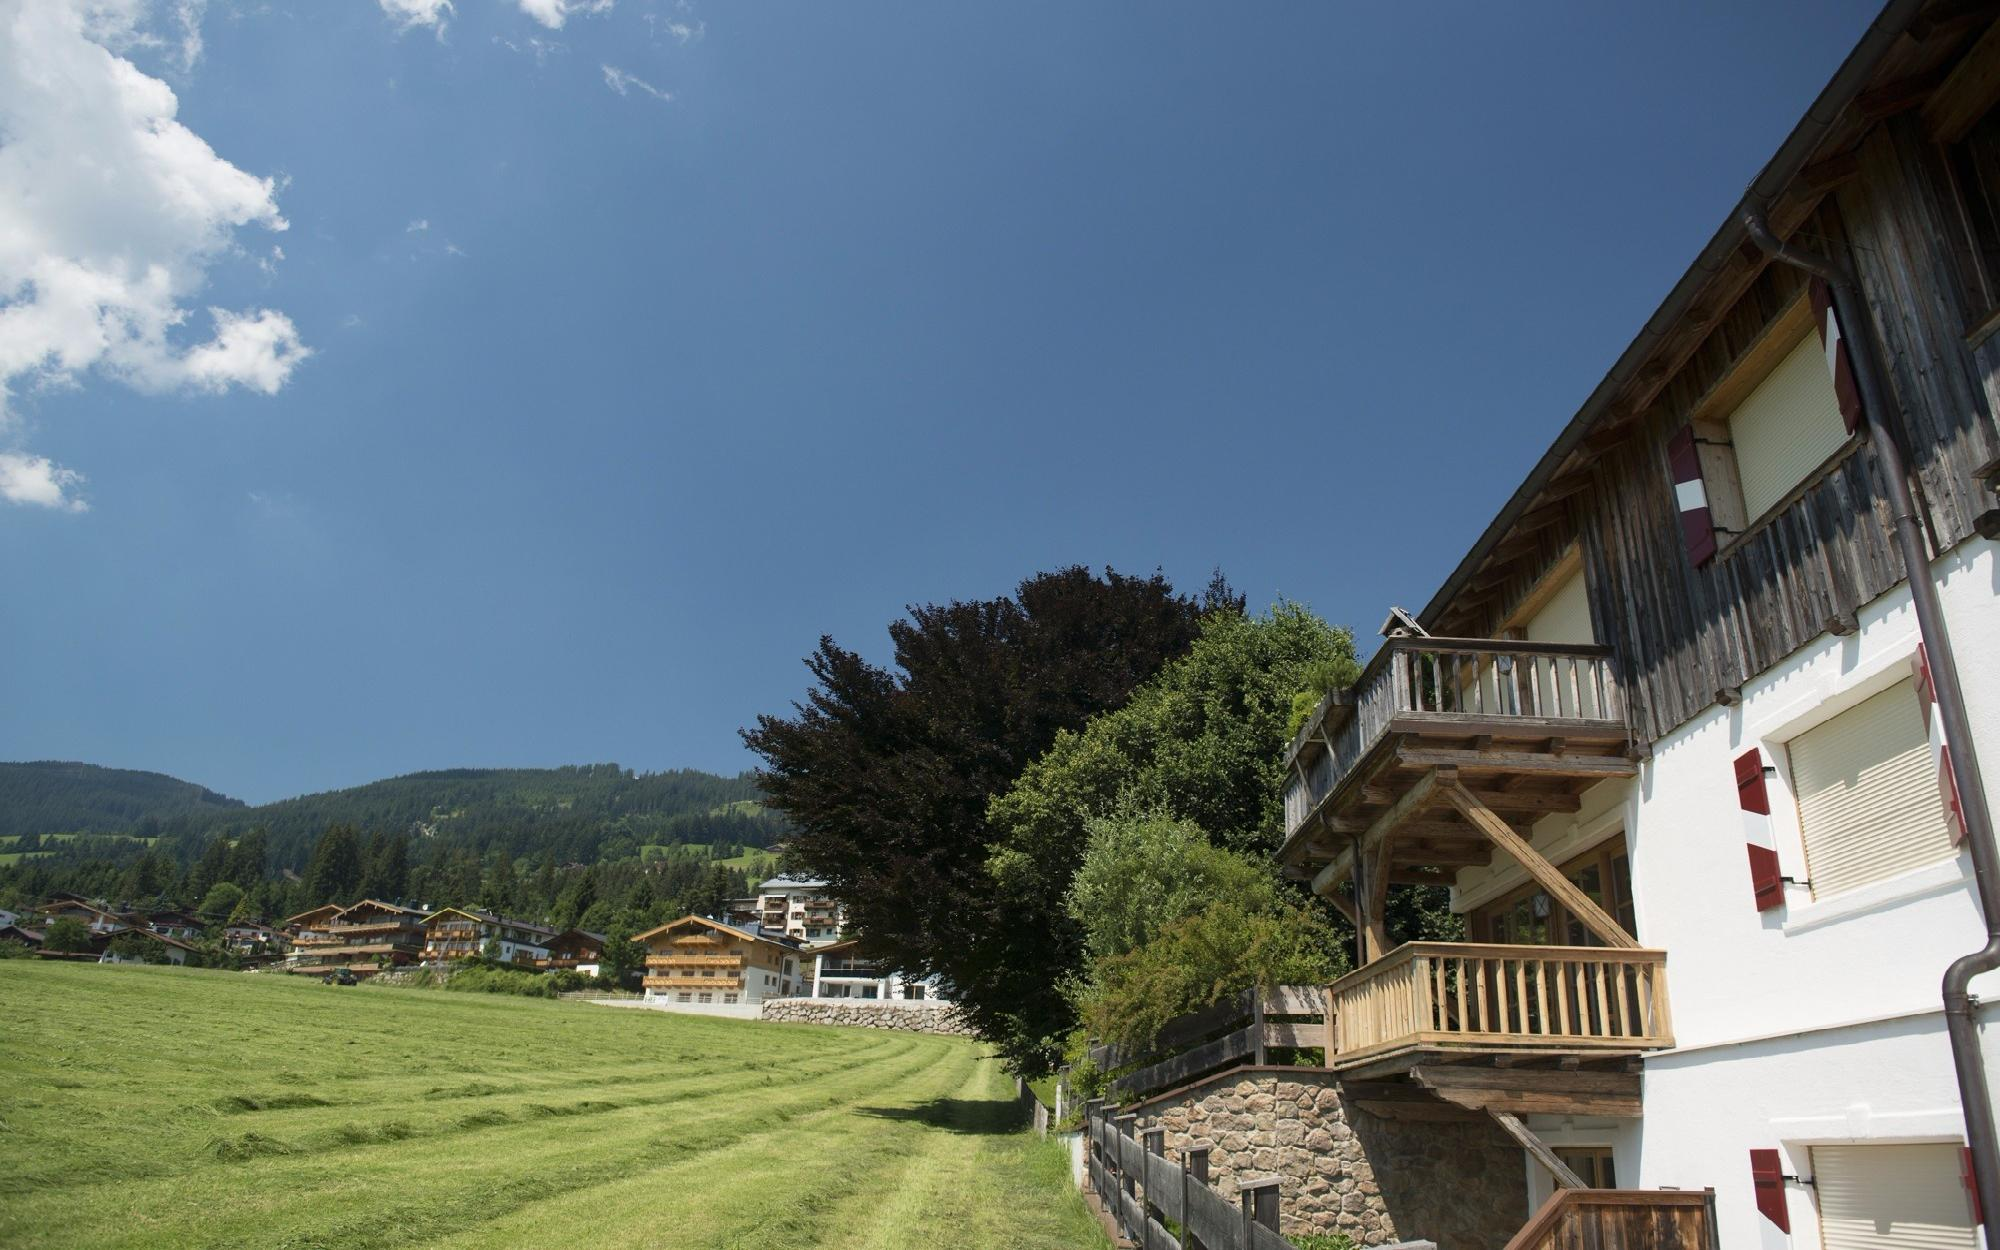 Chic apartment in a sunny outermost region in Tyrol For Sale - Austria - Tirol